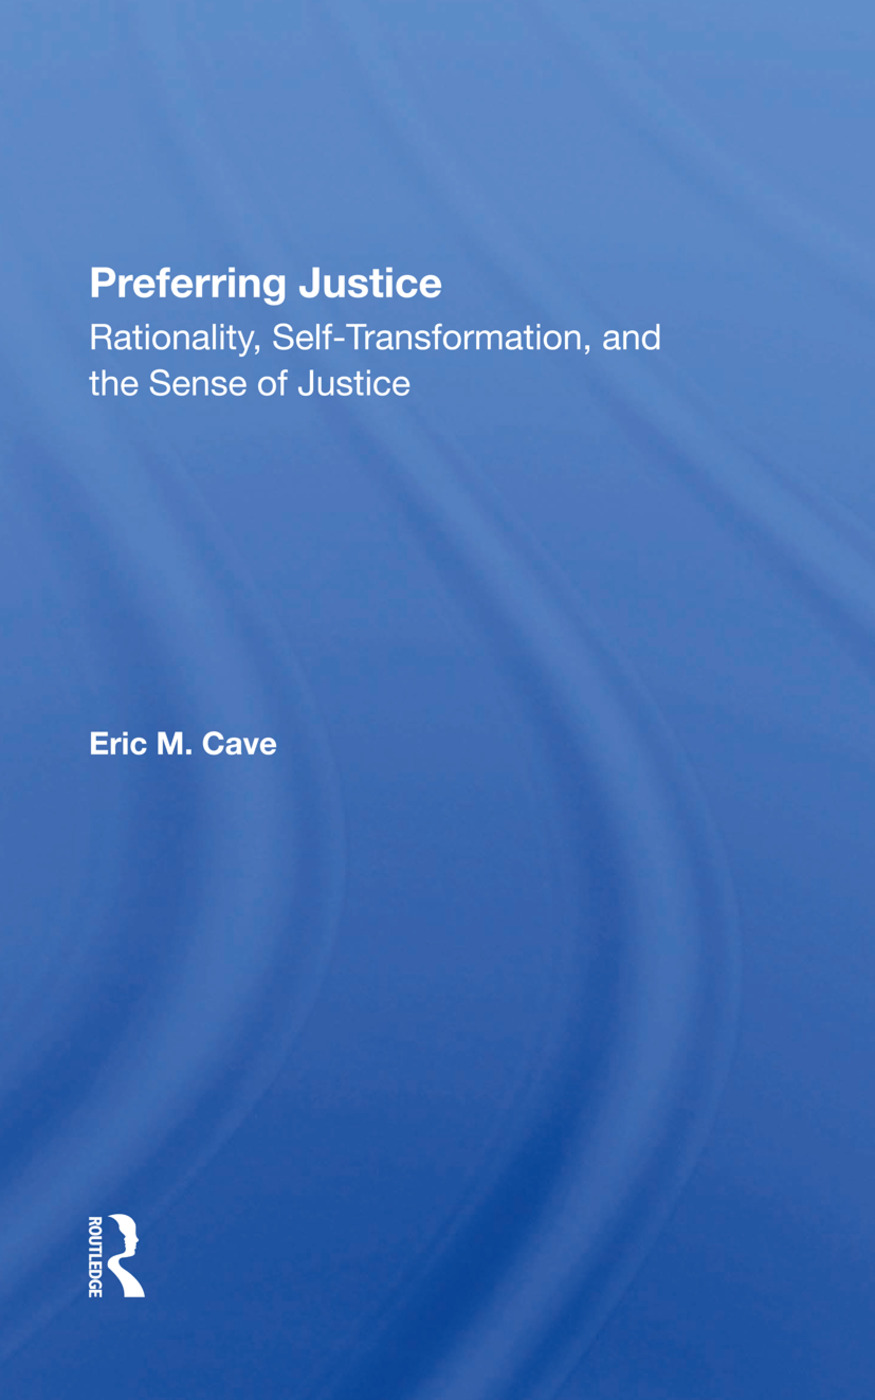 Preferring Justice: Rationality, Selftransformation, And The Sense Of Justice book cover